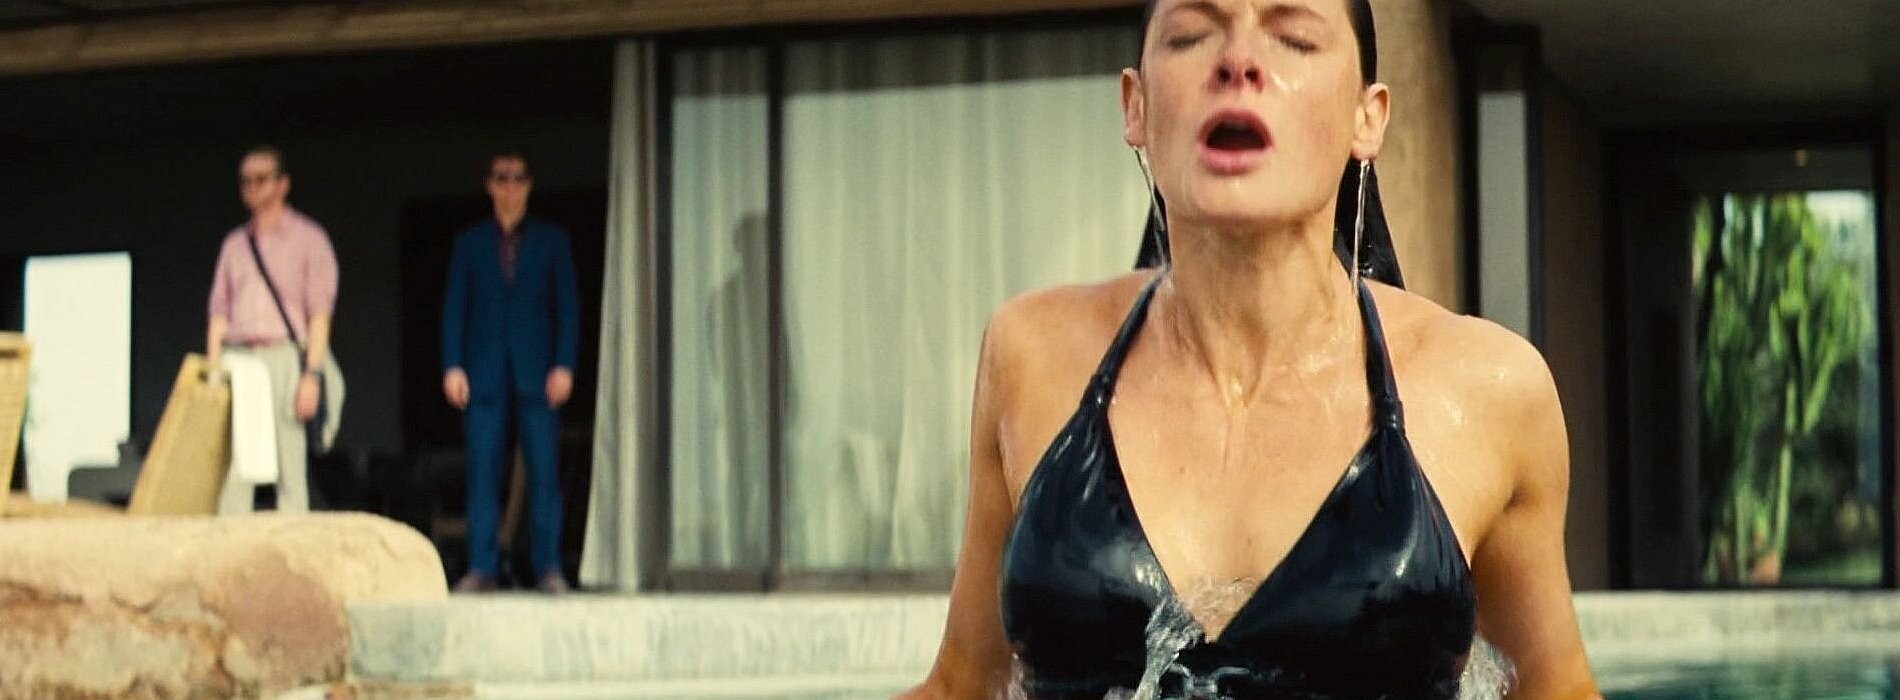 Rebecca Ferguson in Mission Impossible Rogue Nation 2015 fappenings.com 4